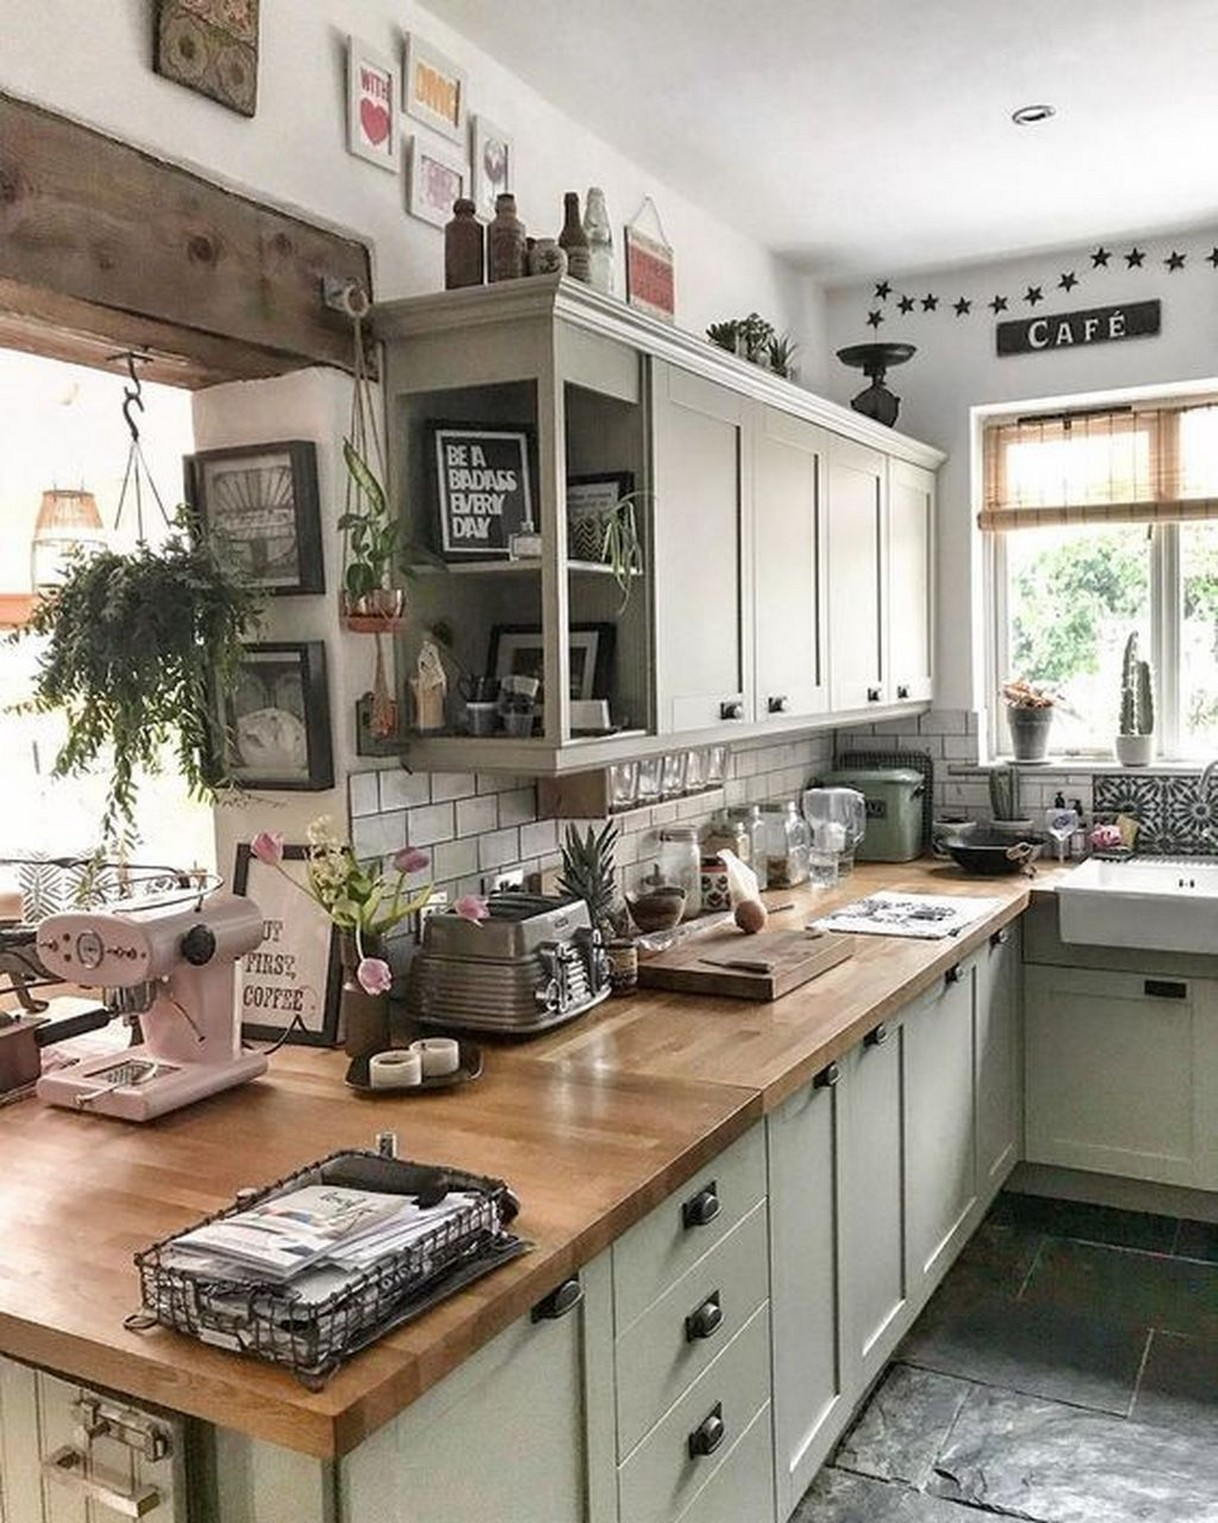 67 Rustic Home Decorating Ideas In 2020 Home Decor 22